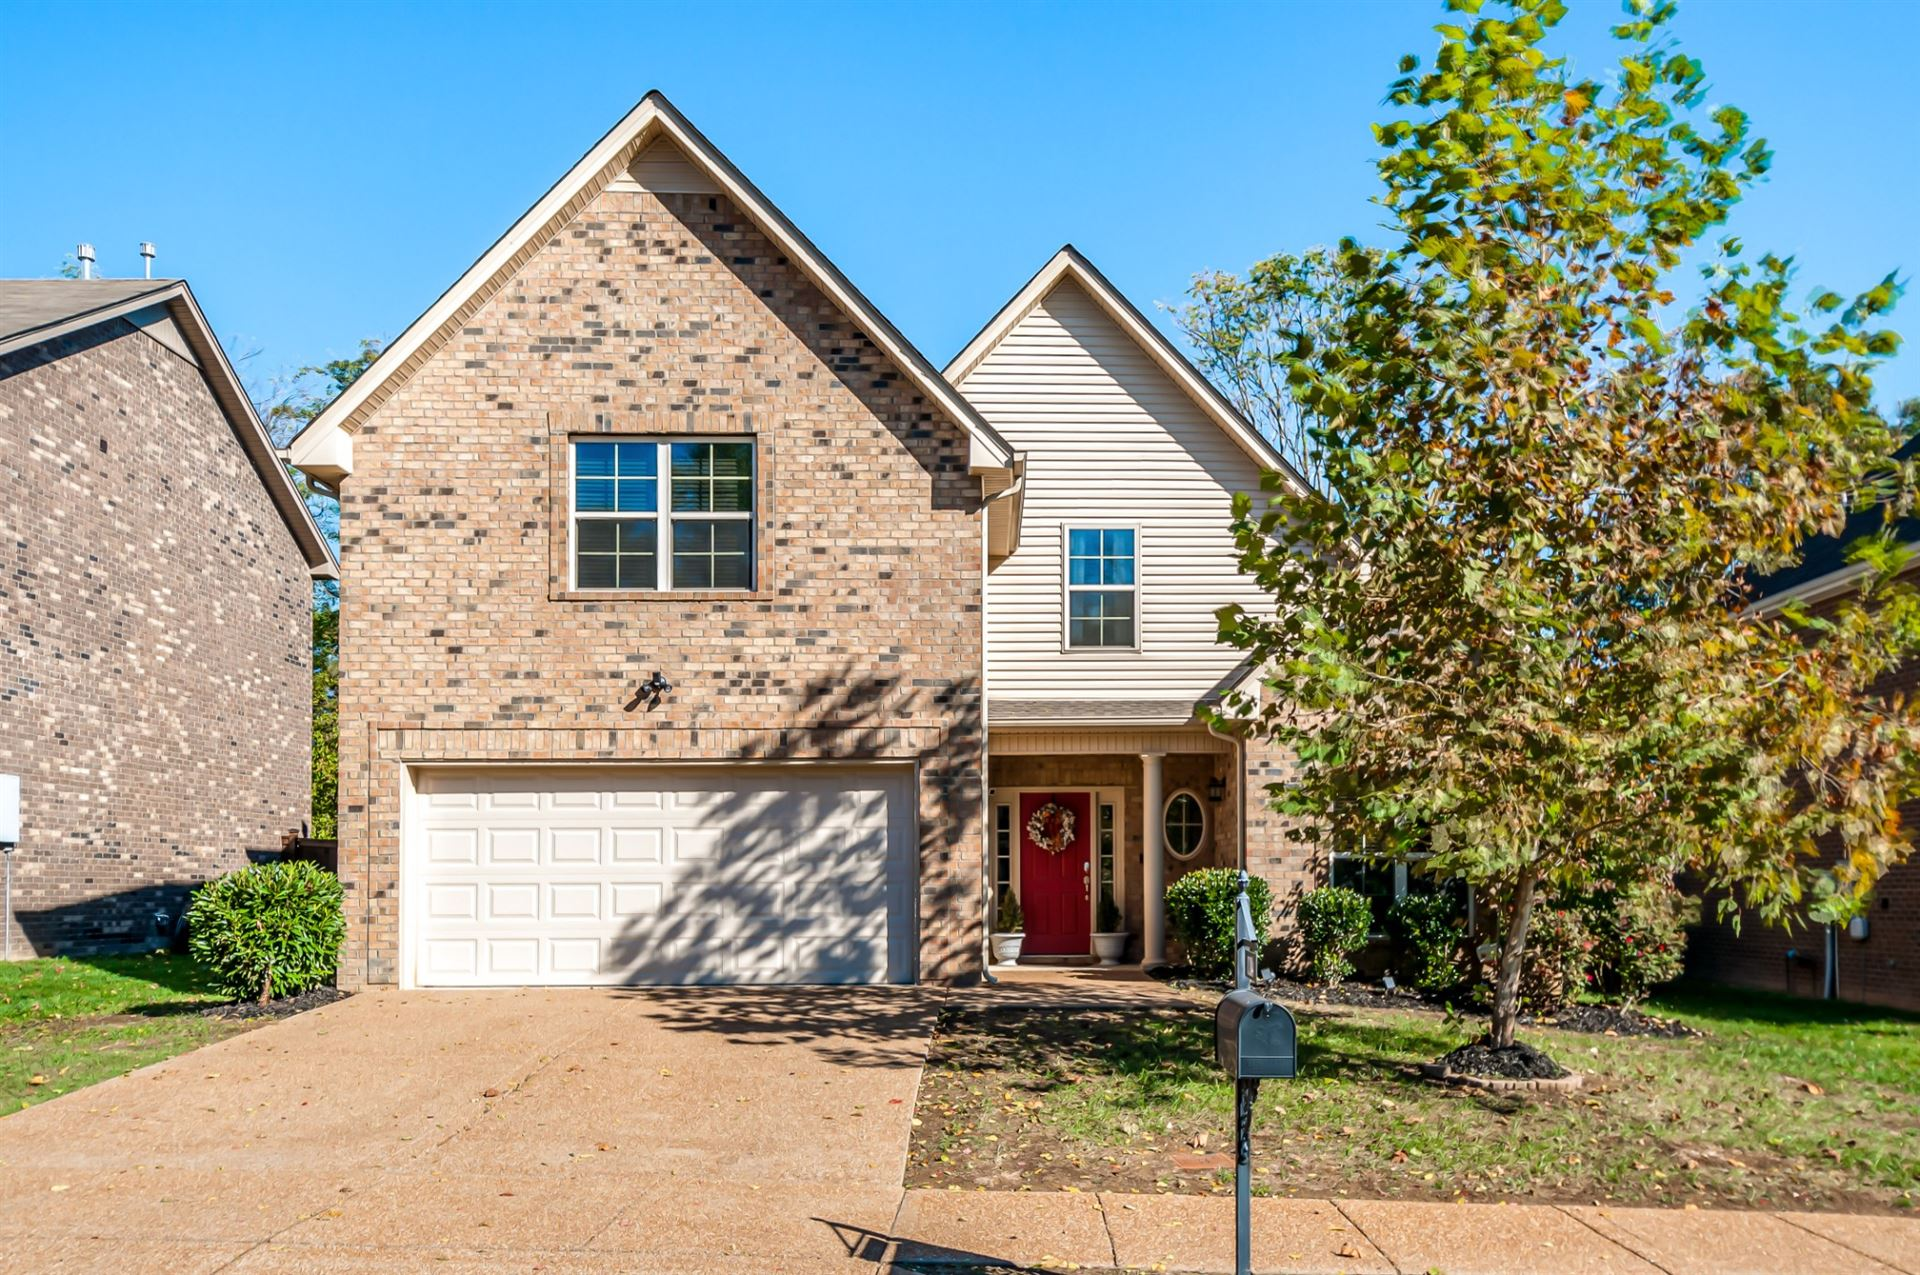 Photo of 8284 Tapoco Lane, Brentwood, TN 37027 (MLS # 2221781)